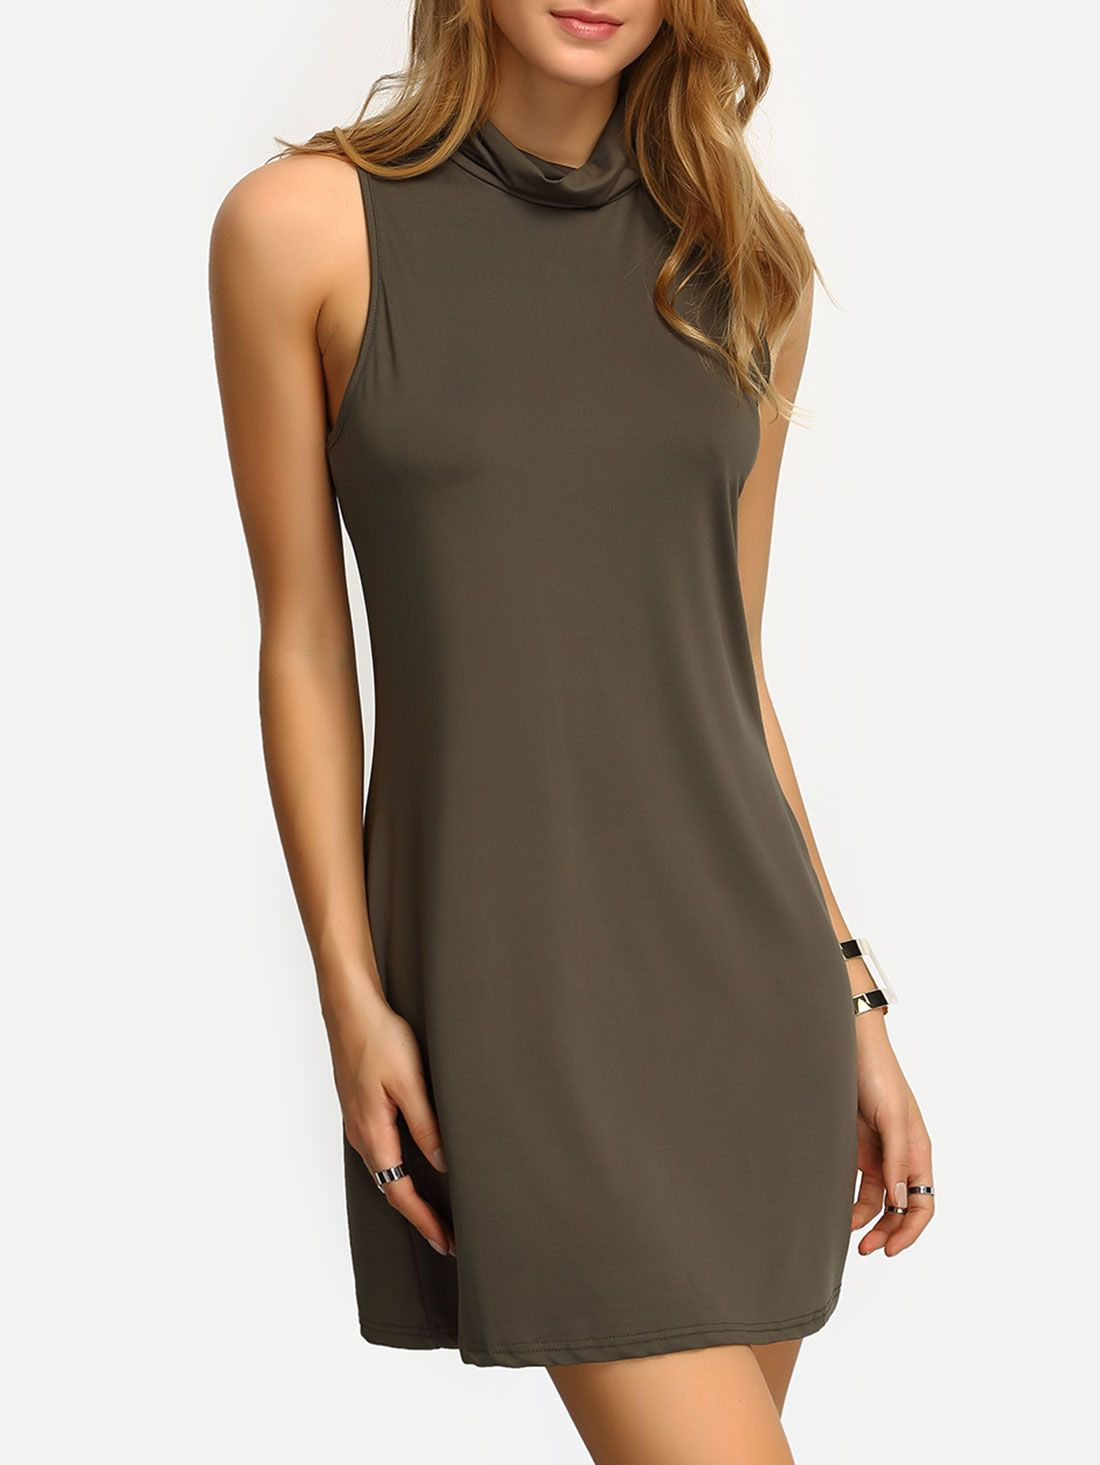 Olive green high neck tank dress party perfect airctb